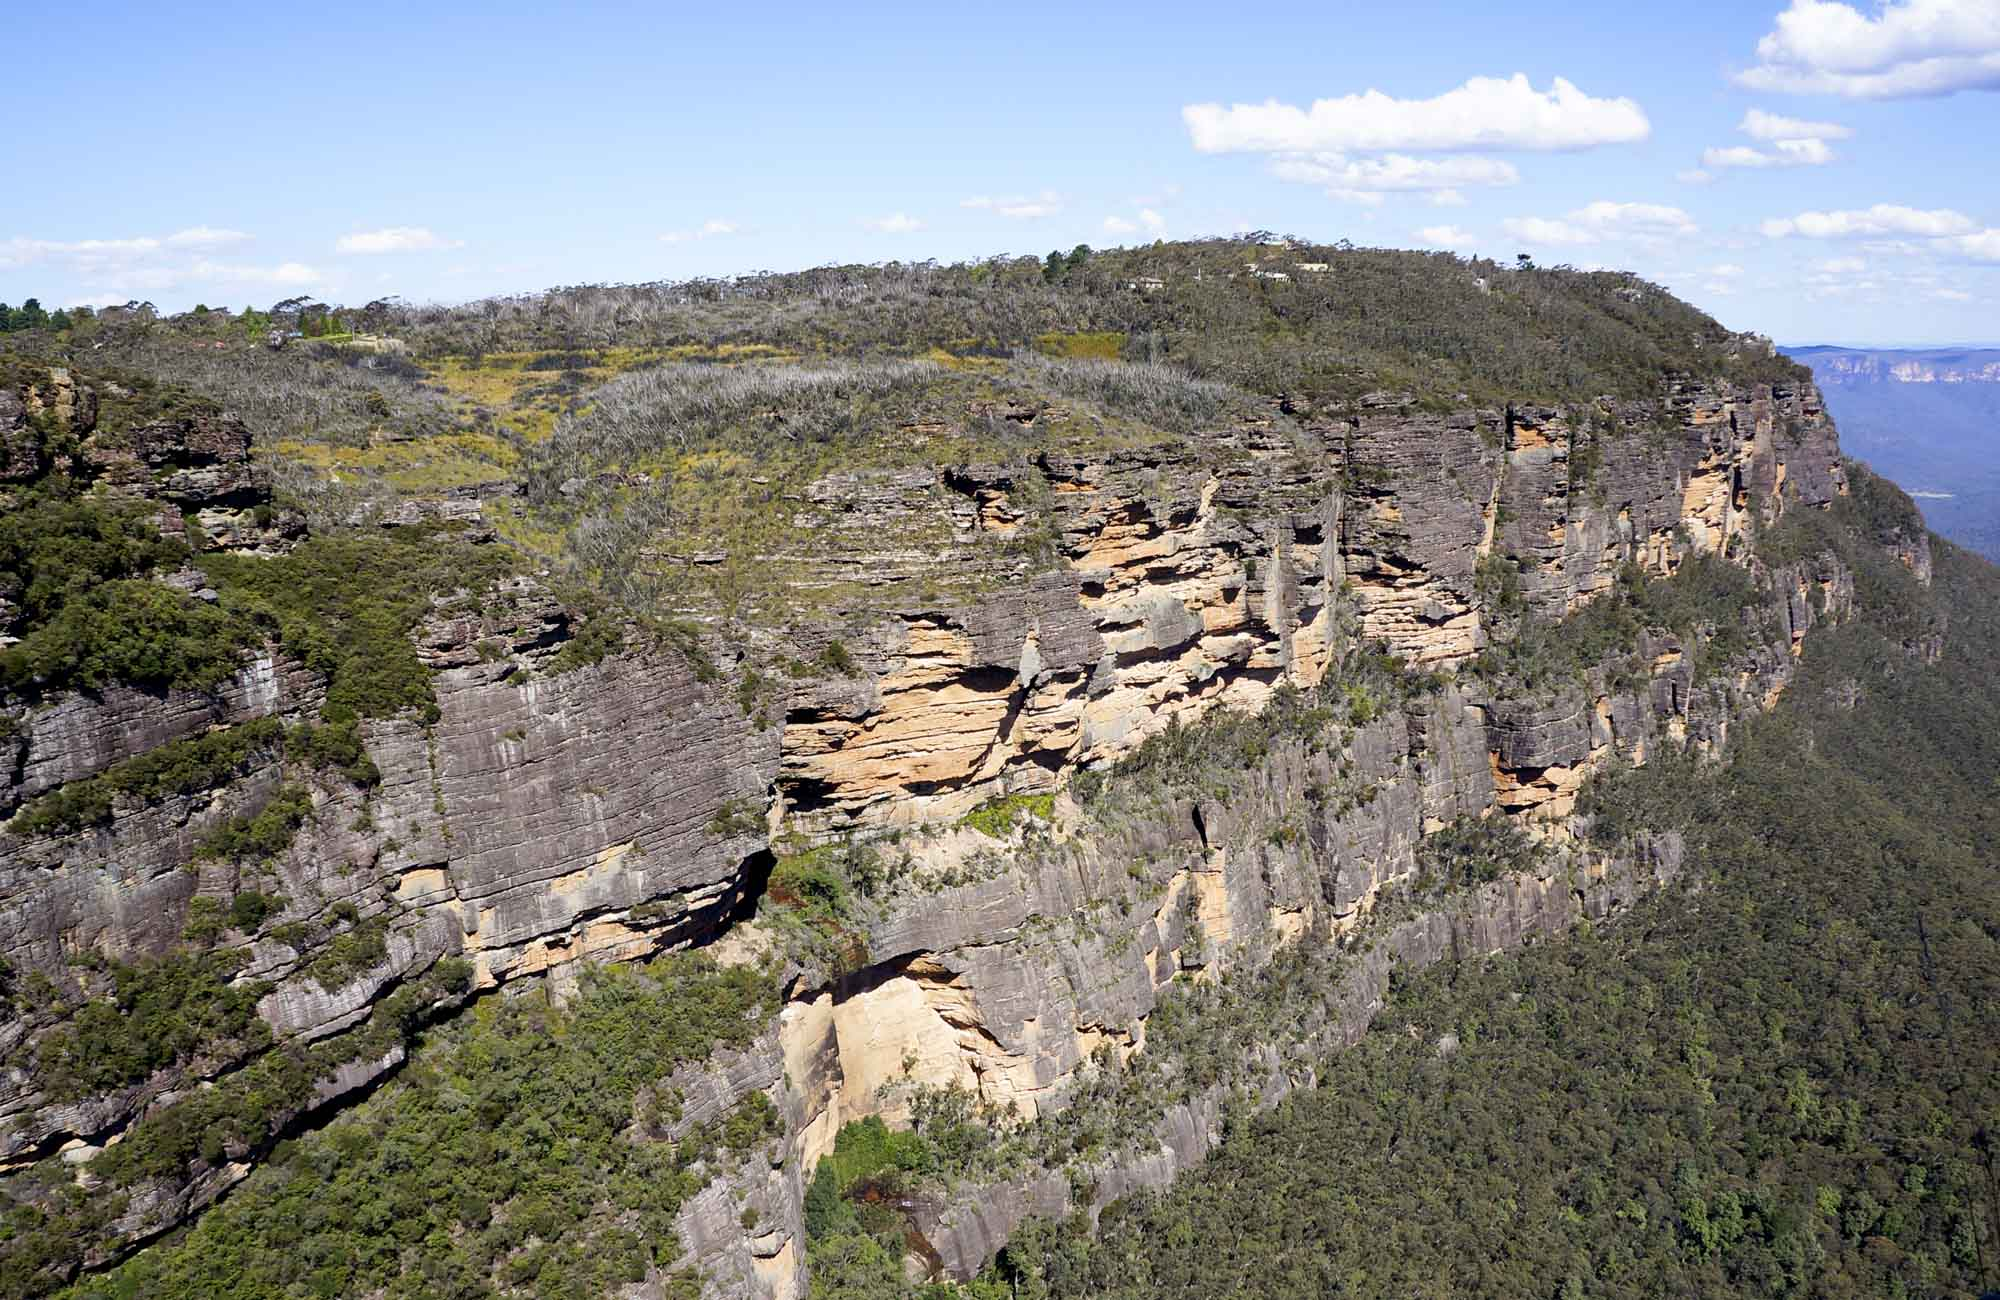 Escarpement views along Prince Henry Cliff Walk, Blue Mountains National Park. Photo: Steve Alton/OEH